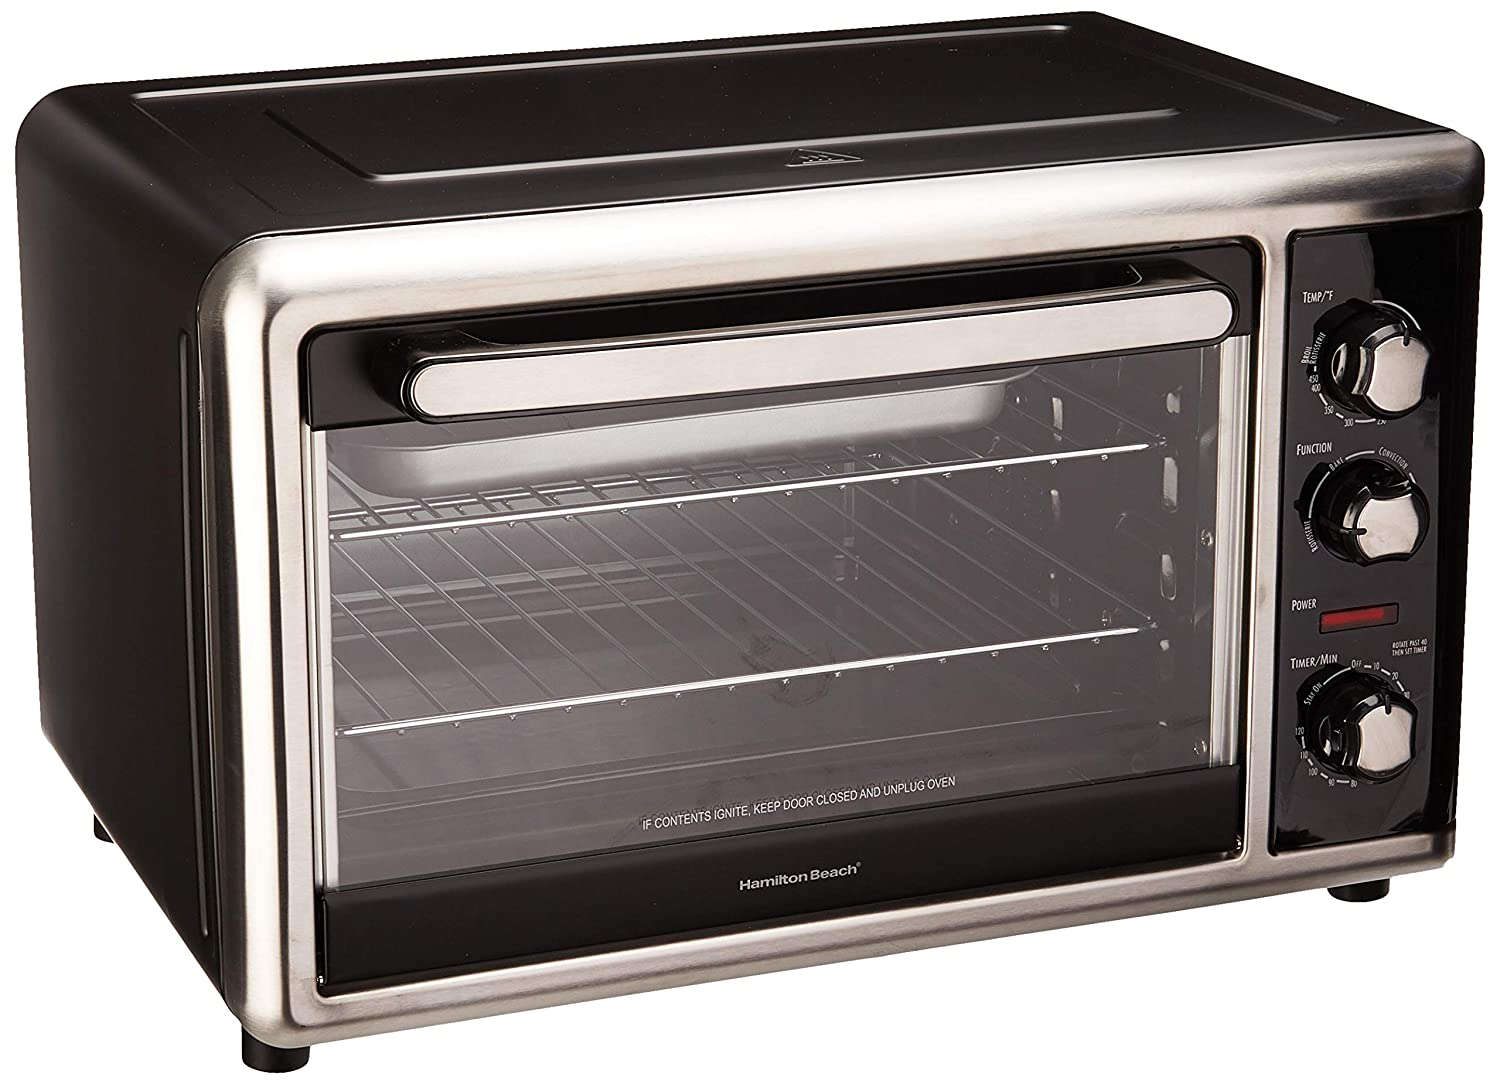 Hamilton Beach 31105D Countertop Oven with Silver, Black, Large